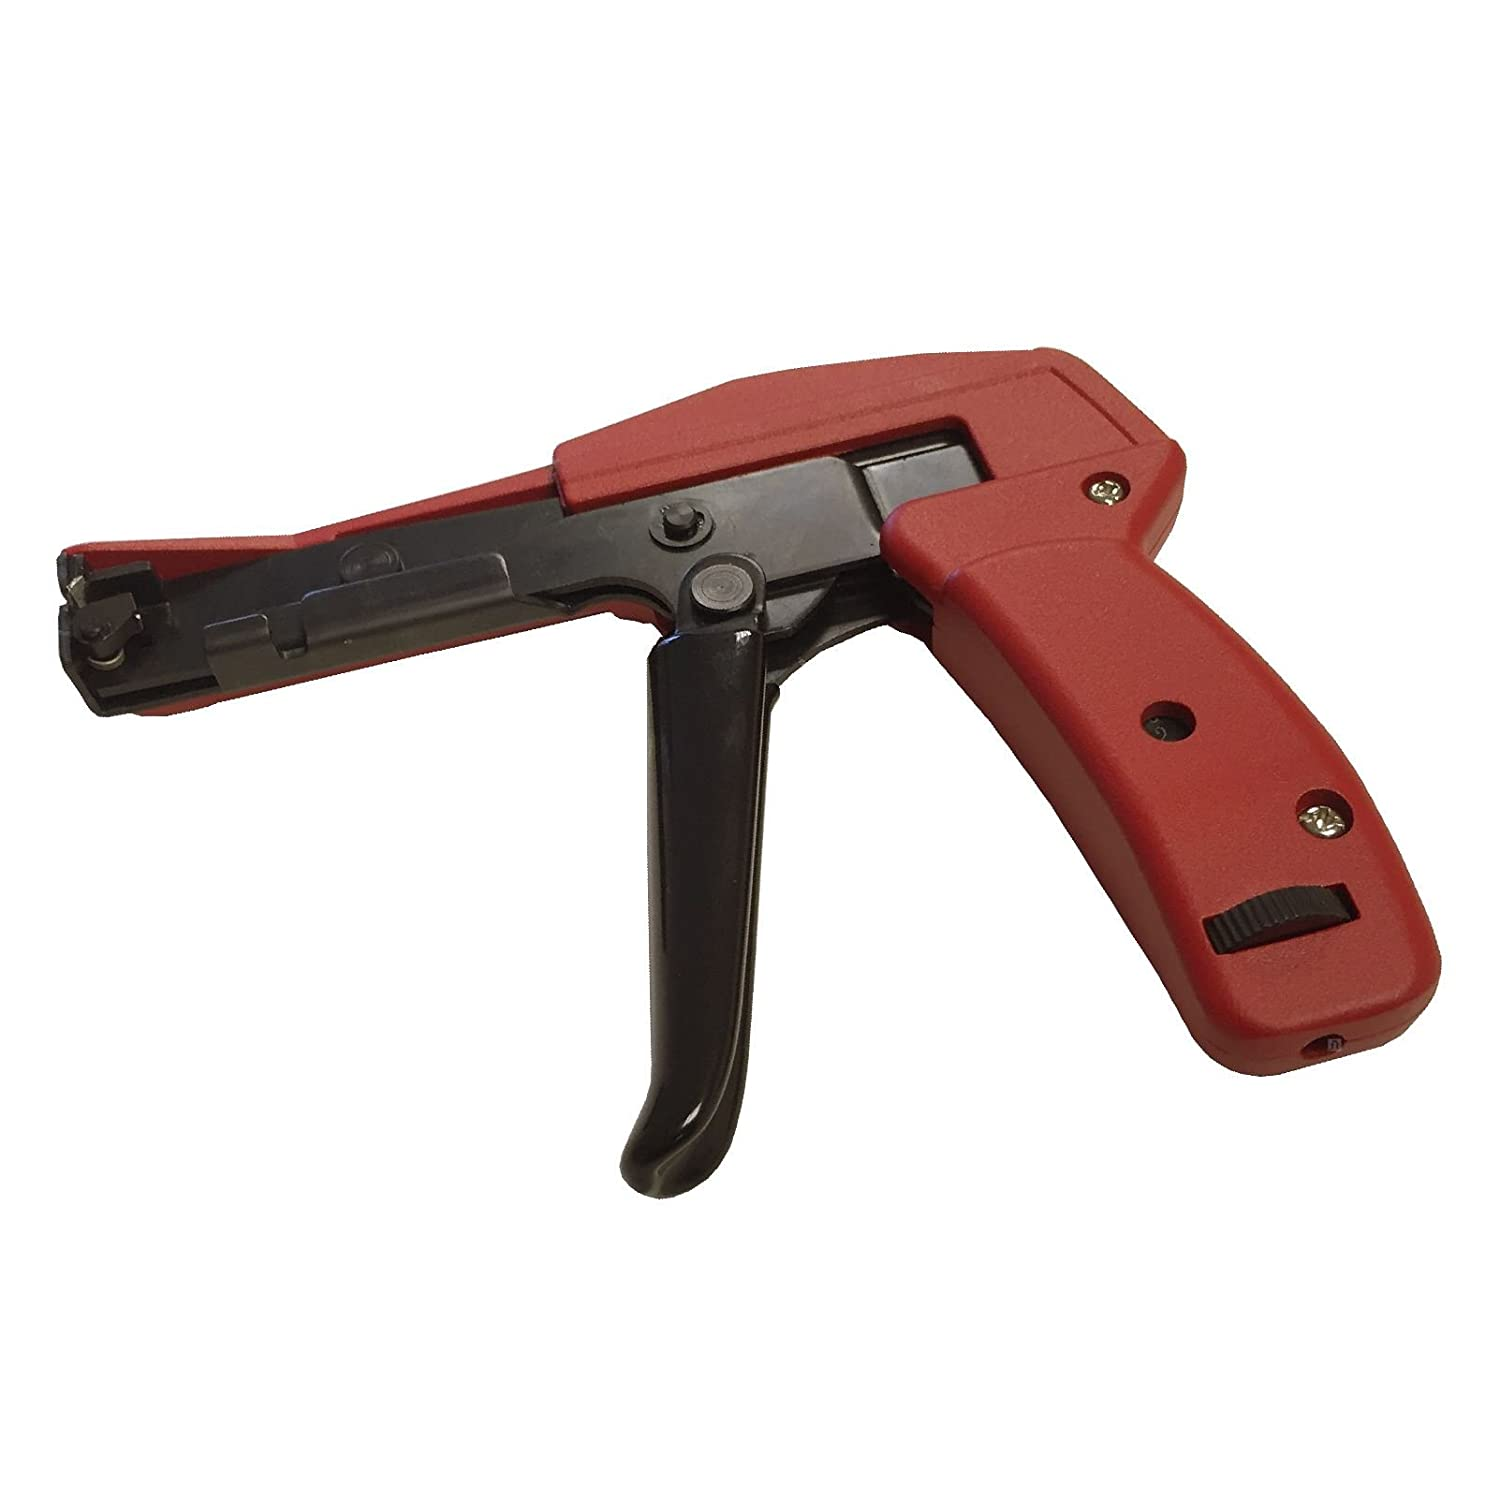 Zip Tie Gun >> Amazon Com Heavy Duty Cable Tie Gun Tensioner Cutter Tool For 2 4